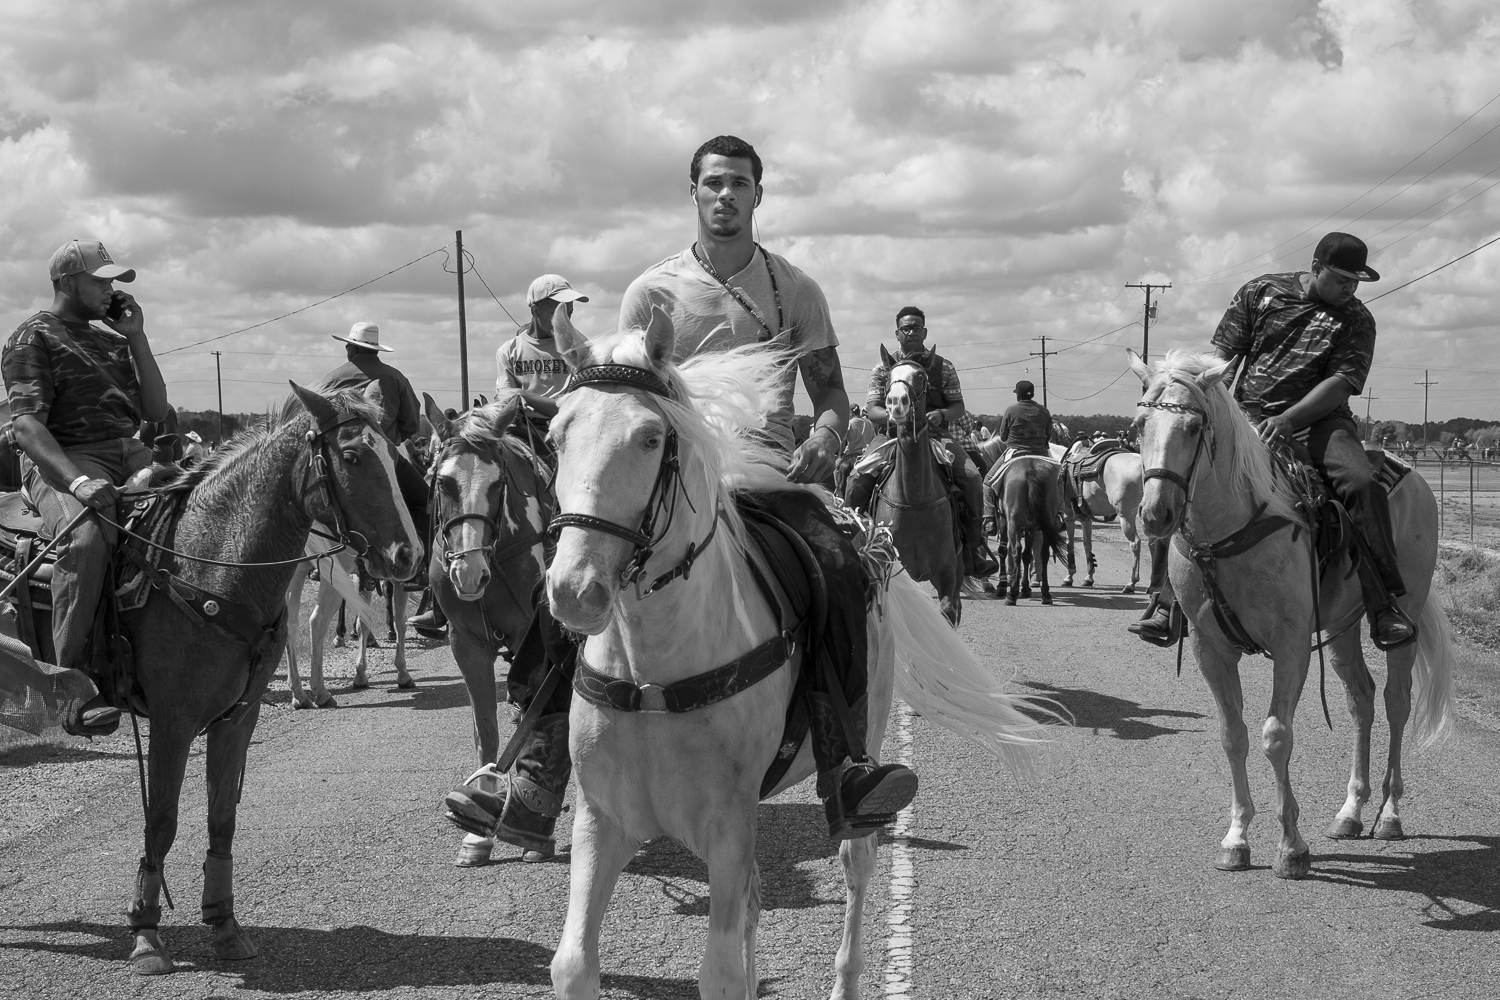 Finalist for the Michael P. Smith Fund for Documentary Photography